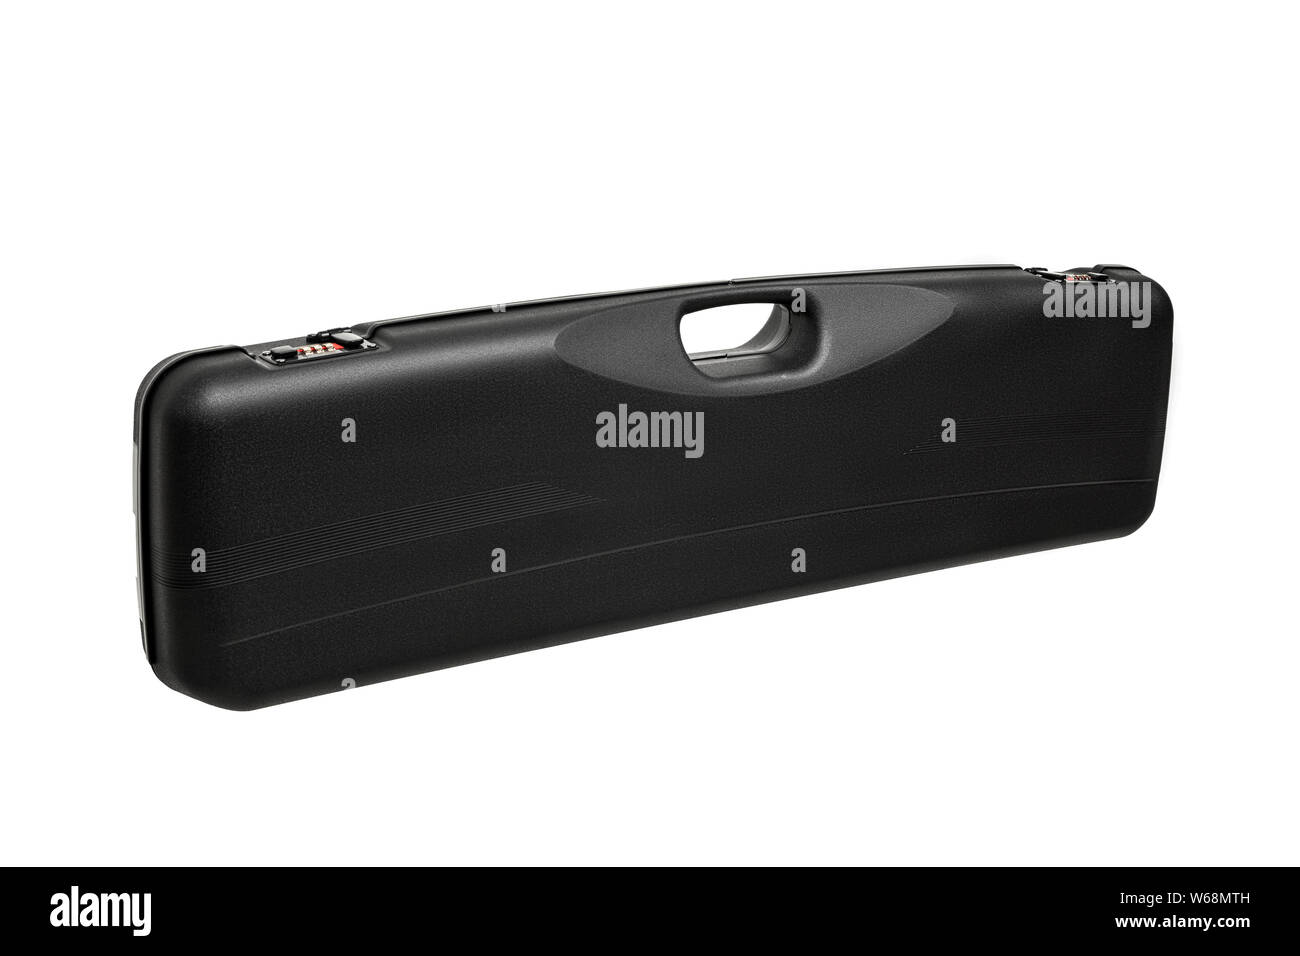 Plastic case for weapons with a combination lock and handle for transport isolate on a white background. Stock Photo